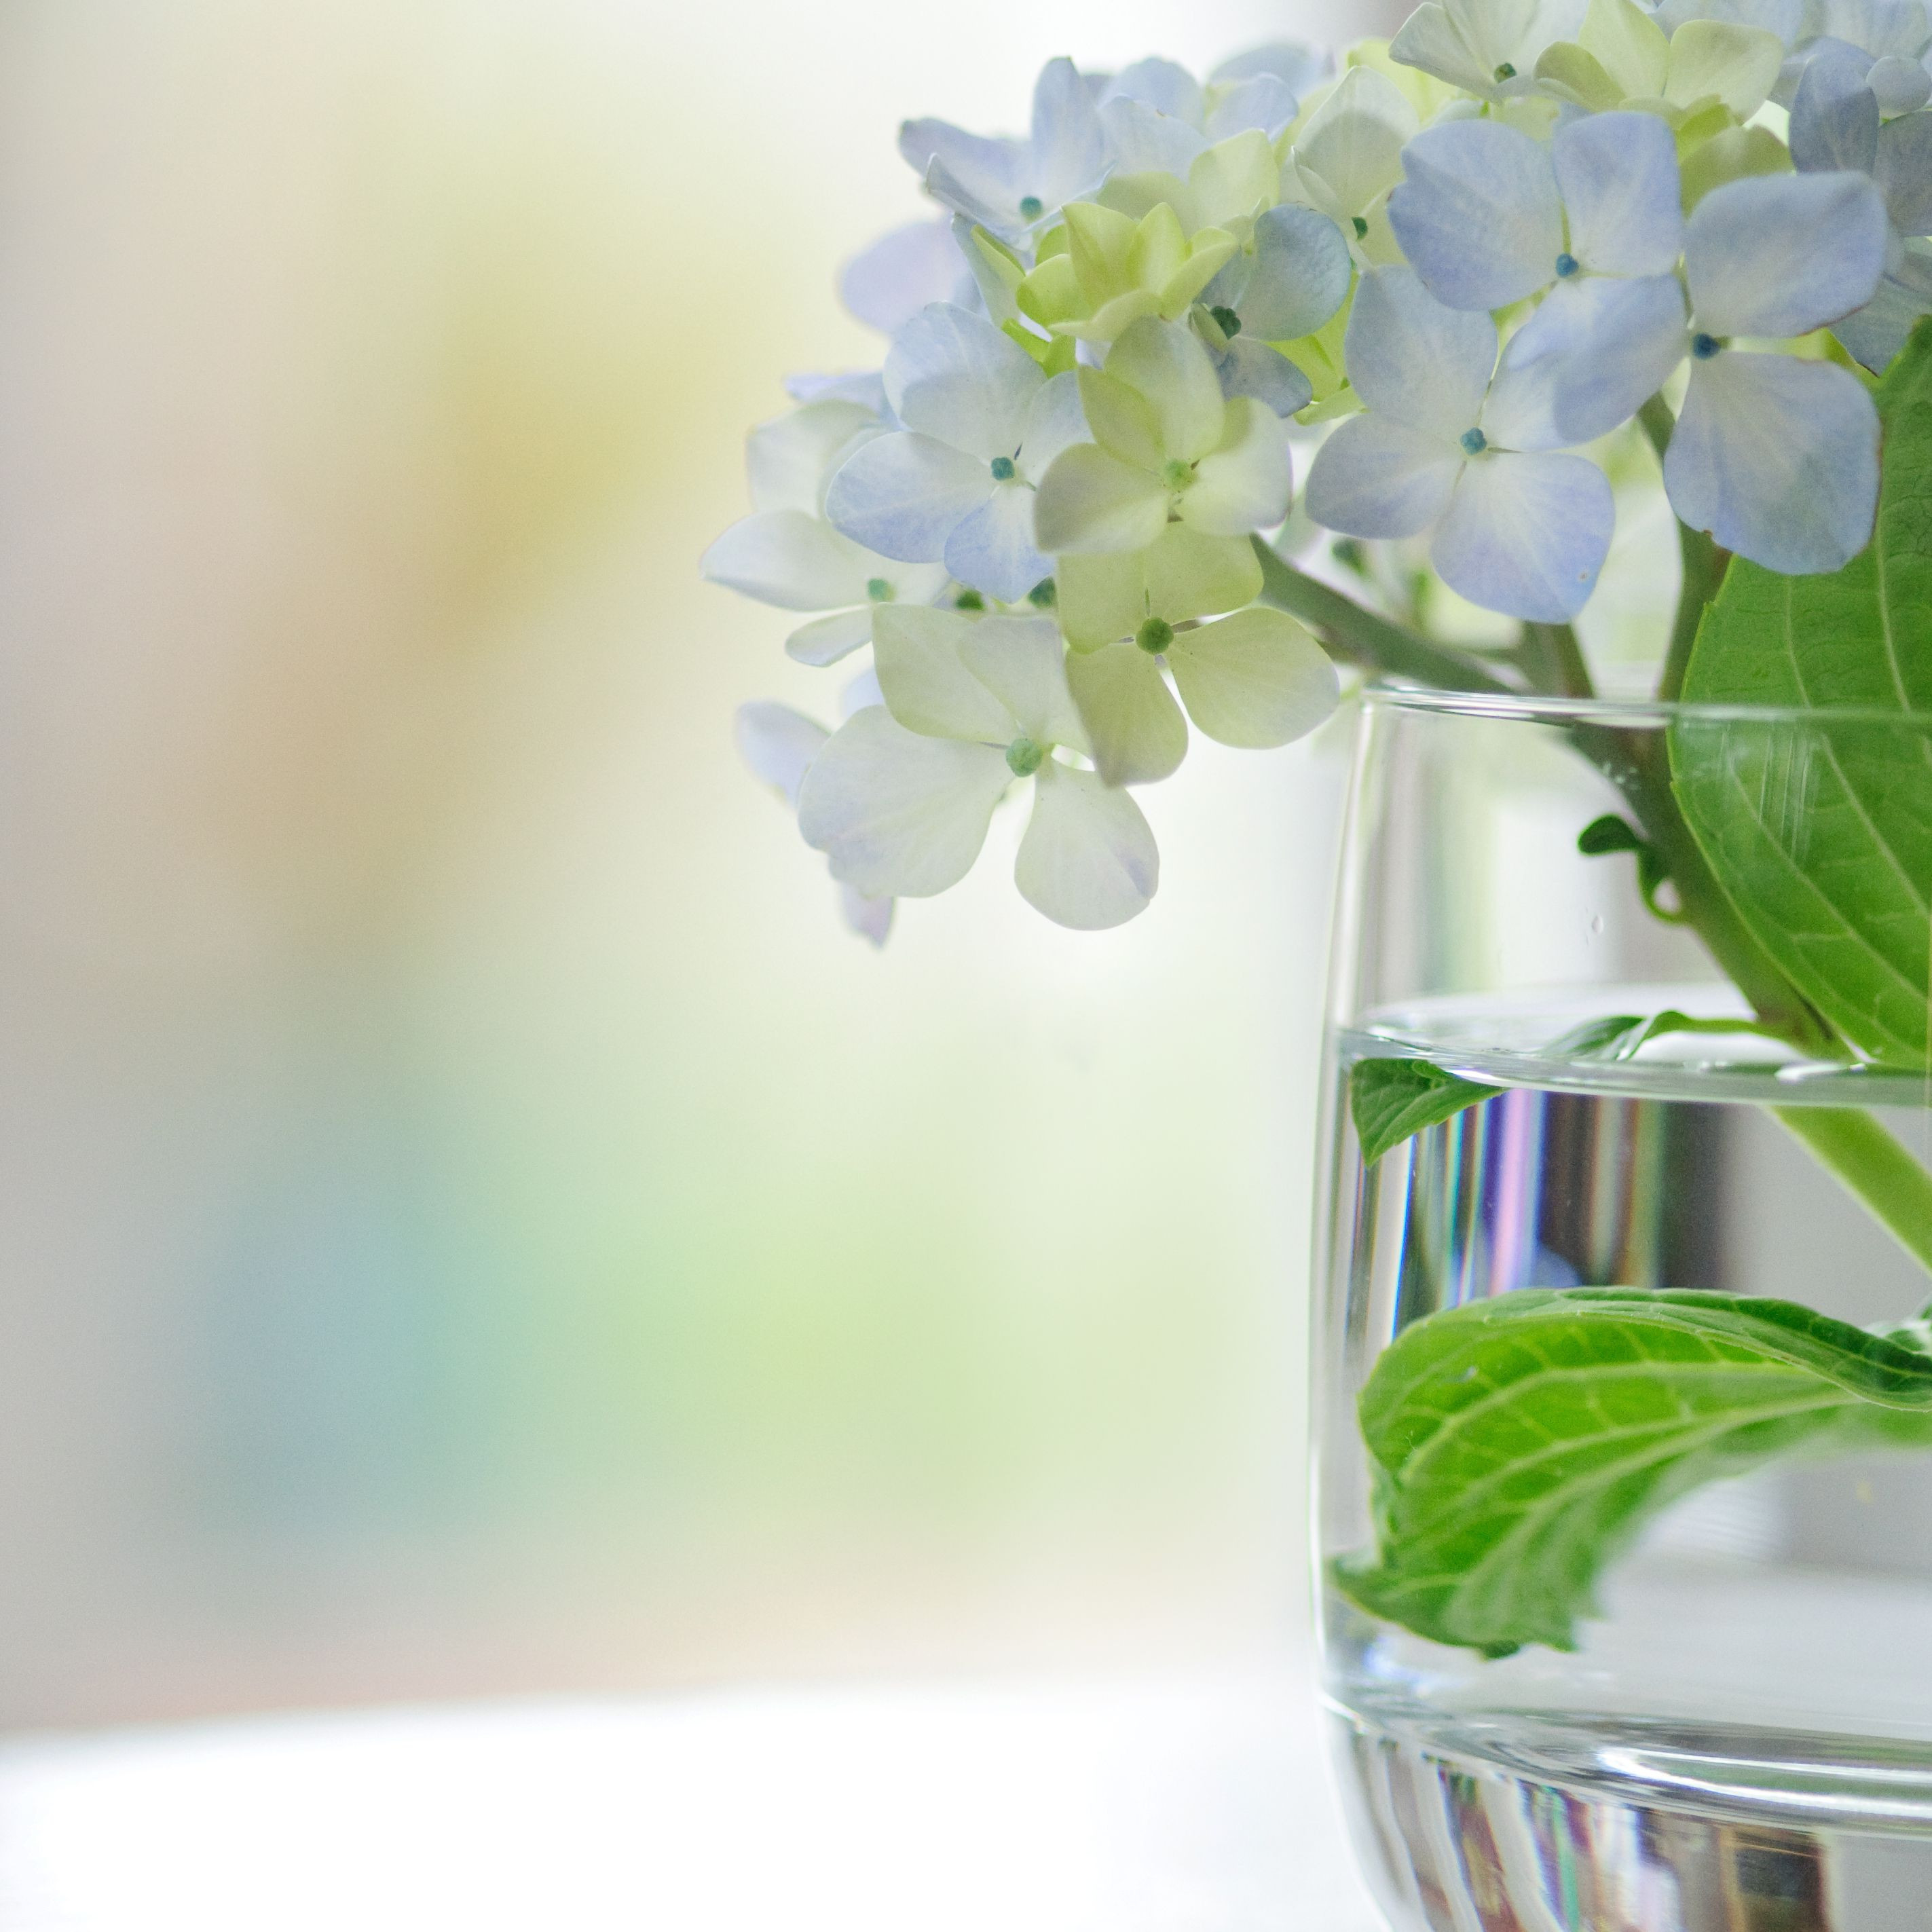 clear gel for flower vases of how to dry and preserve hydrangea flowers inside hydrangeas vase gettyimages 103956334 589b63945f9b58819c837e07